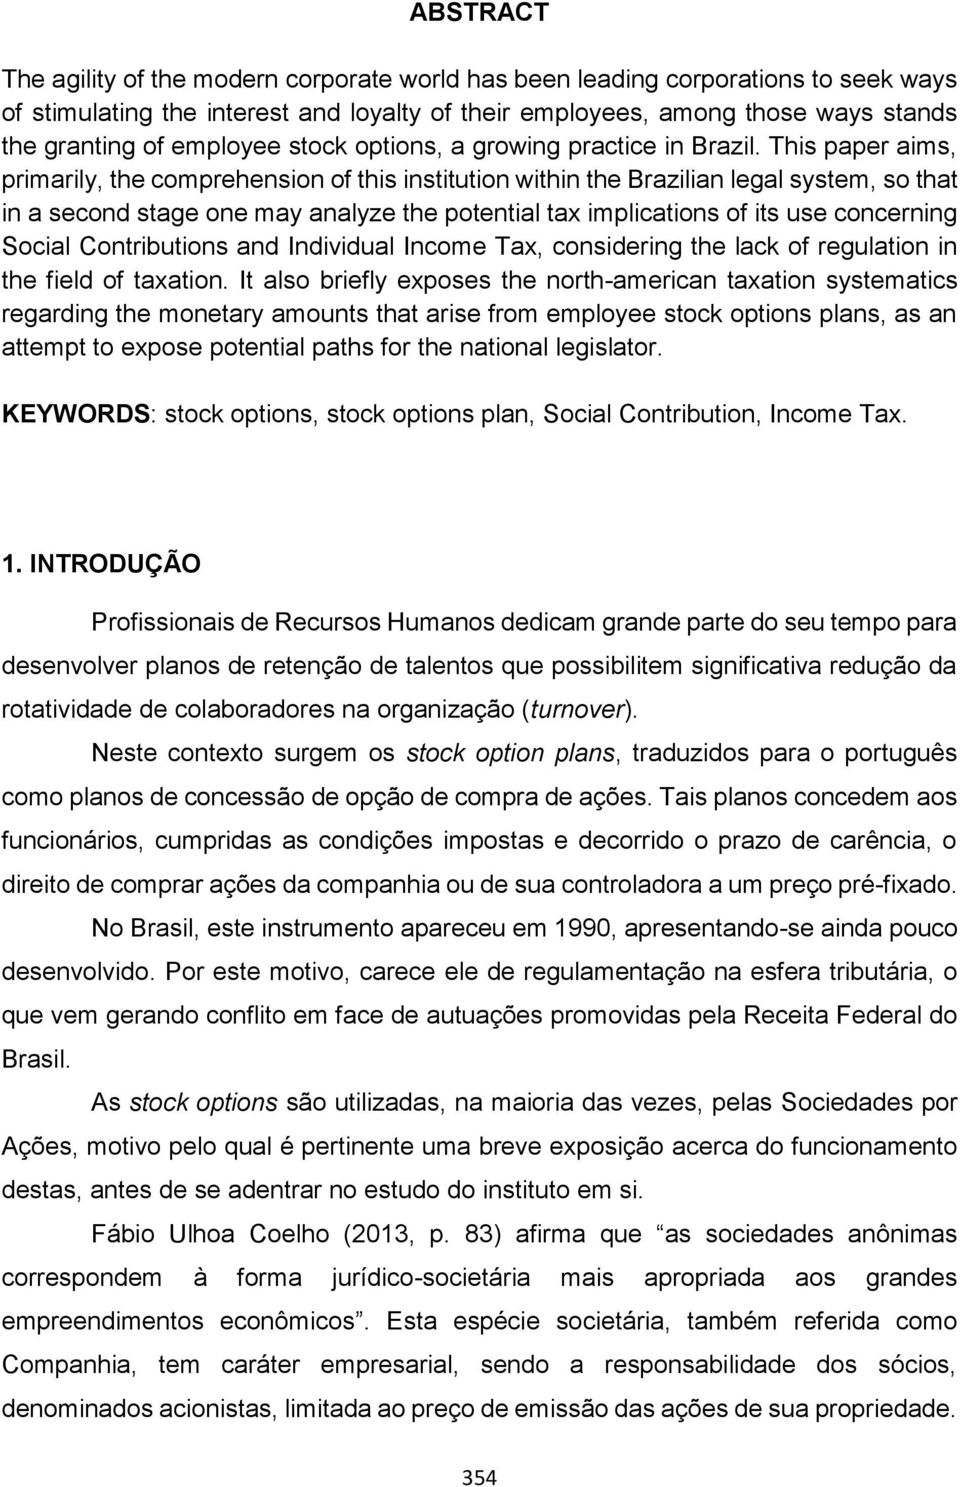 This paper aims, primarily, the comprehension of this institution within the Brazilian legal system, so that in a second stage one may analyze the potential tax implications of its use concerning